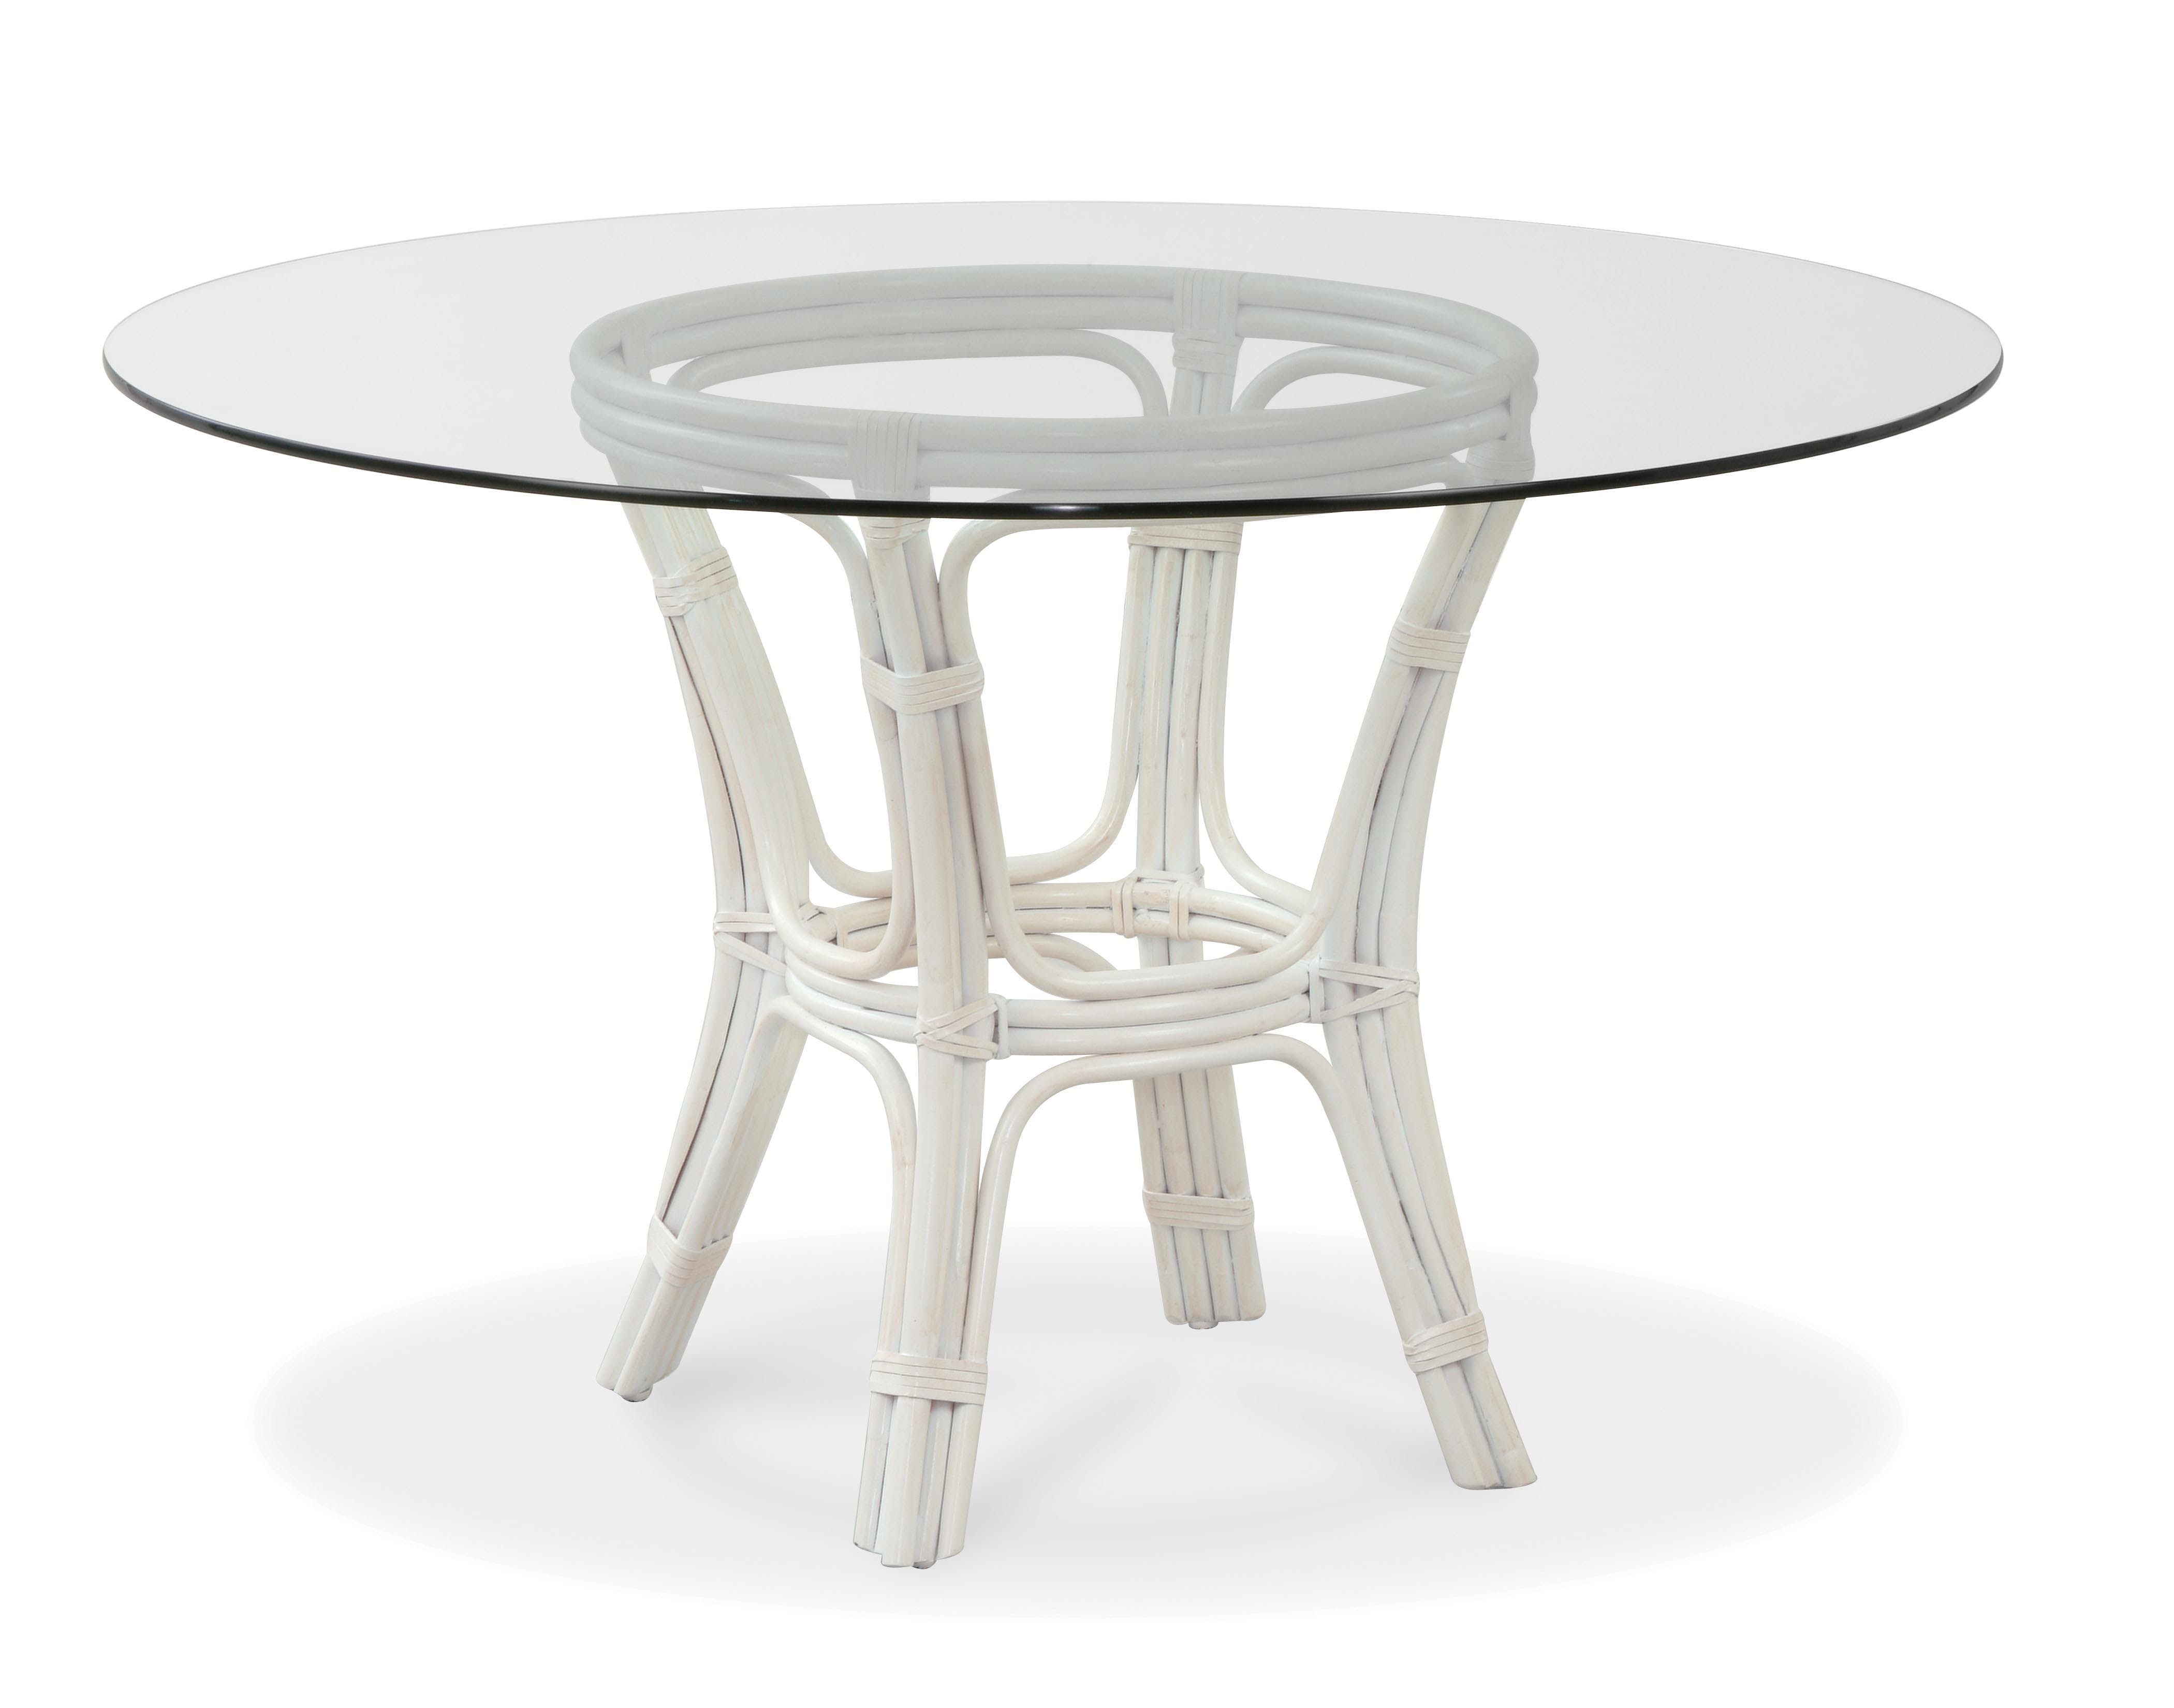 Picture of: Braxton Culler 979 075b Dining Room Trellis 36 Round Dining Table